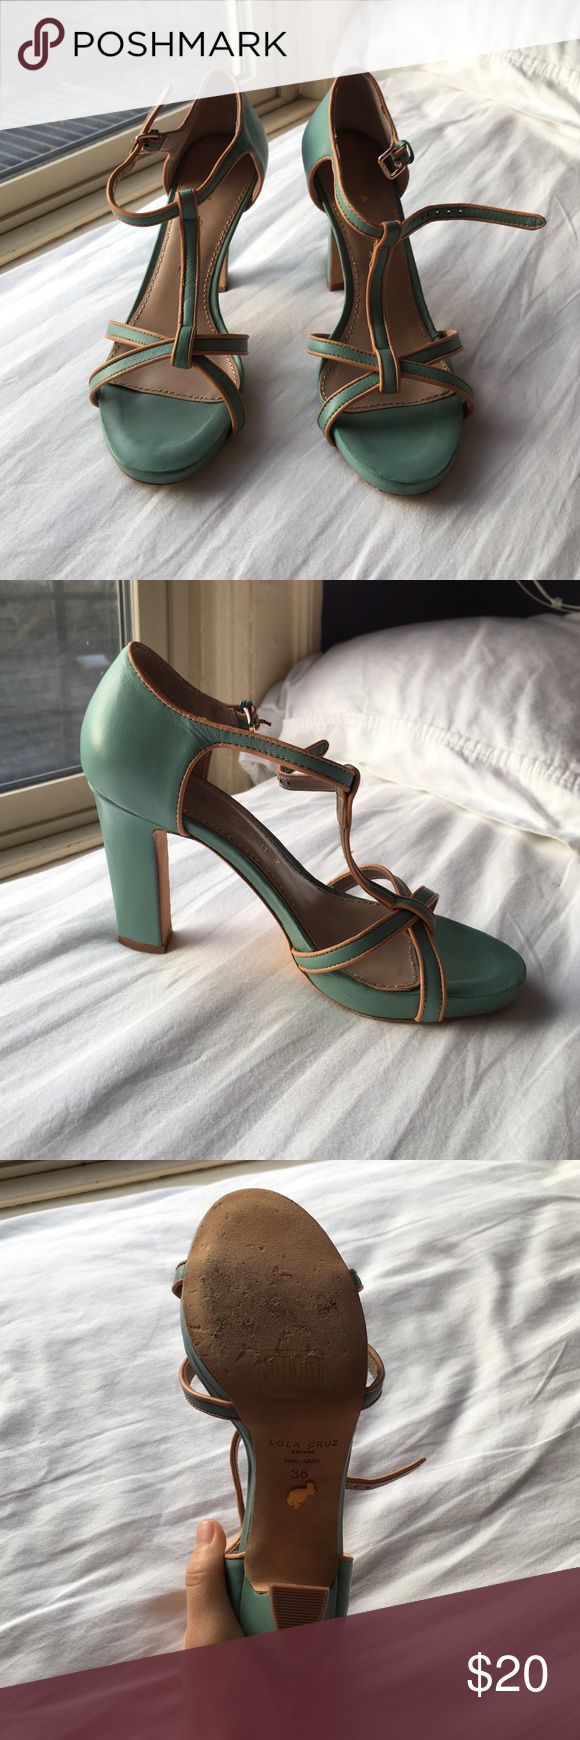 Lola cruz sea green & tan heels! ~3 in heel. super cute color and feel. lightly used. one of the pads on the toe area peels up just a few millimeters but easily glued back down if it becomes an issue! comes with original bag and box it came with 😊 Lola Cruz Shoes Heels